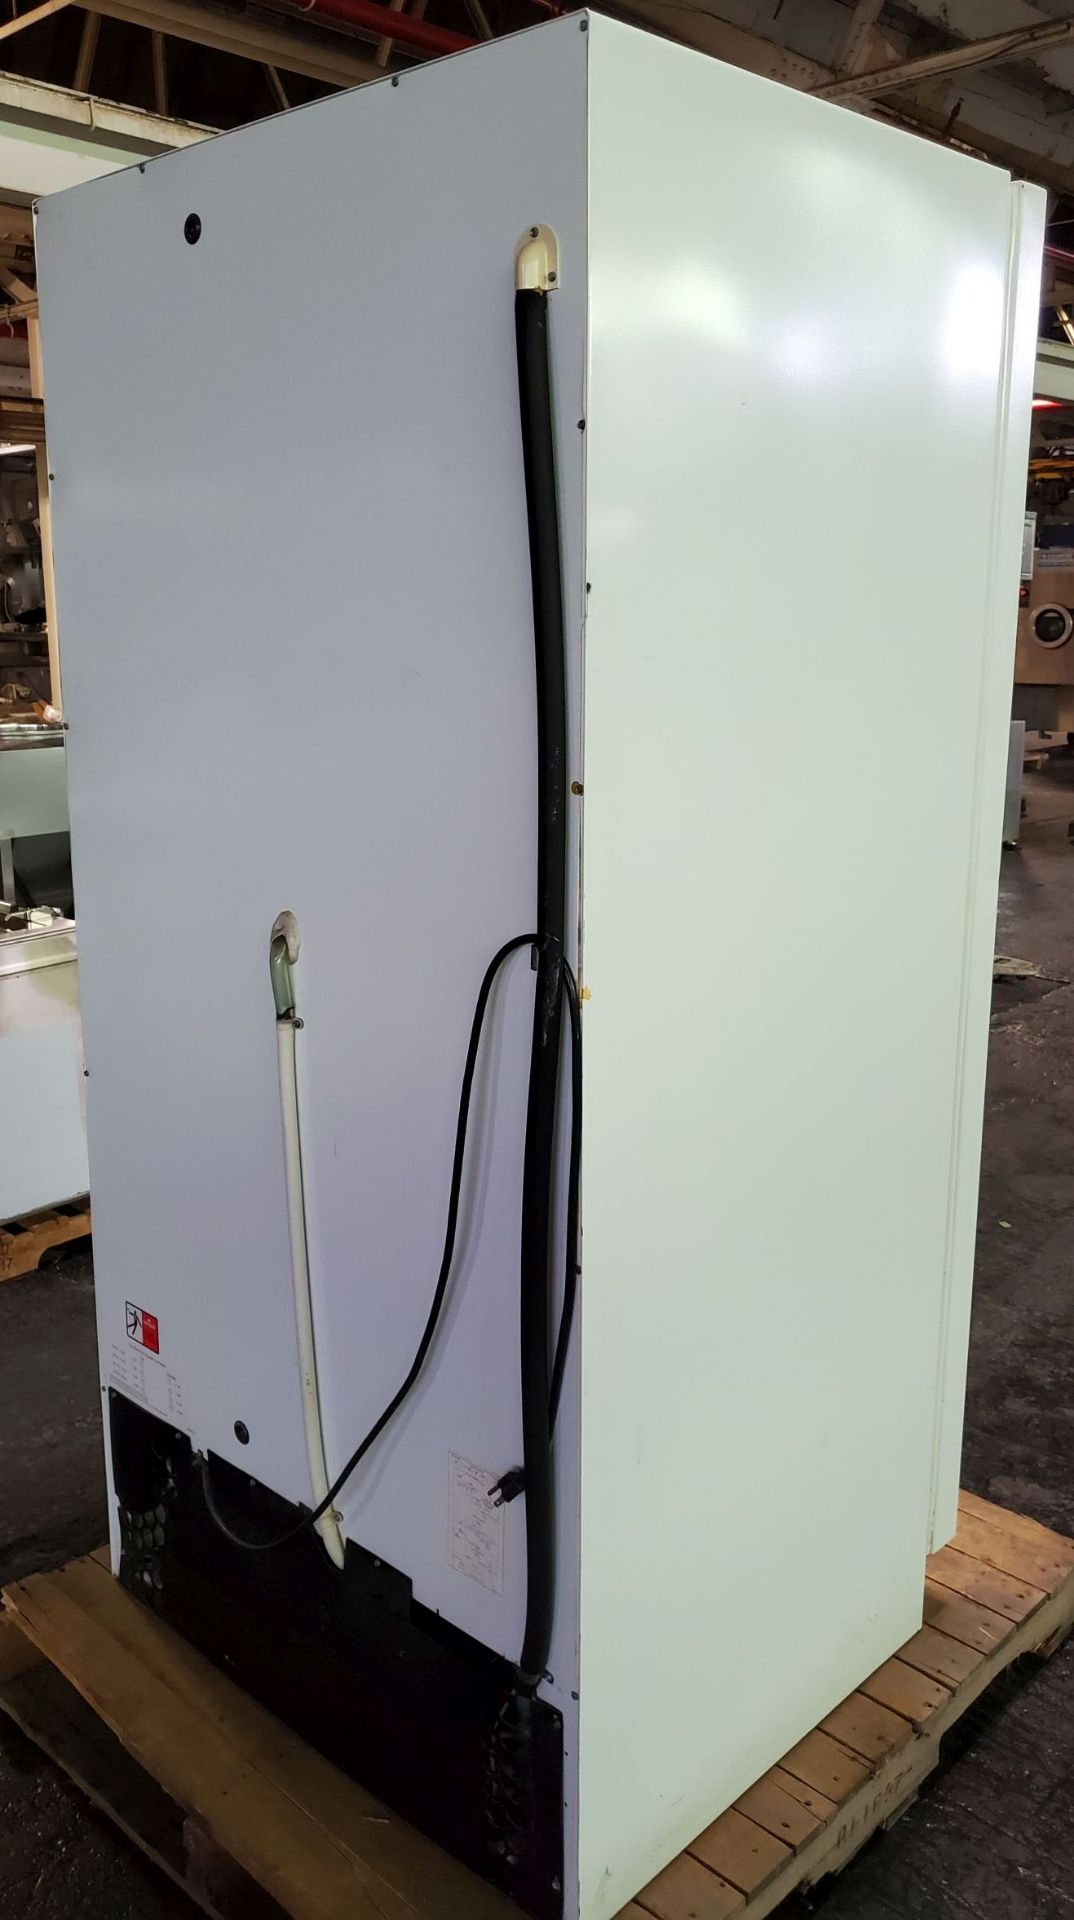 Lot 13 - VWR/GS Laboratory Equipment Refrigerator, model R429GA14